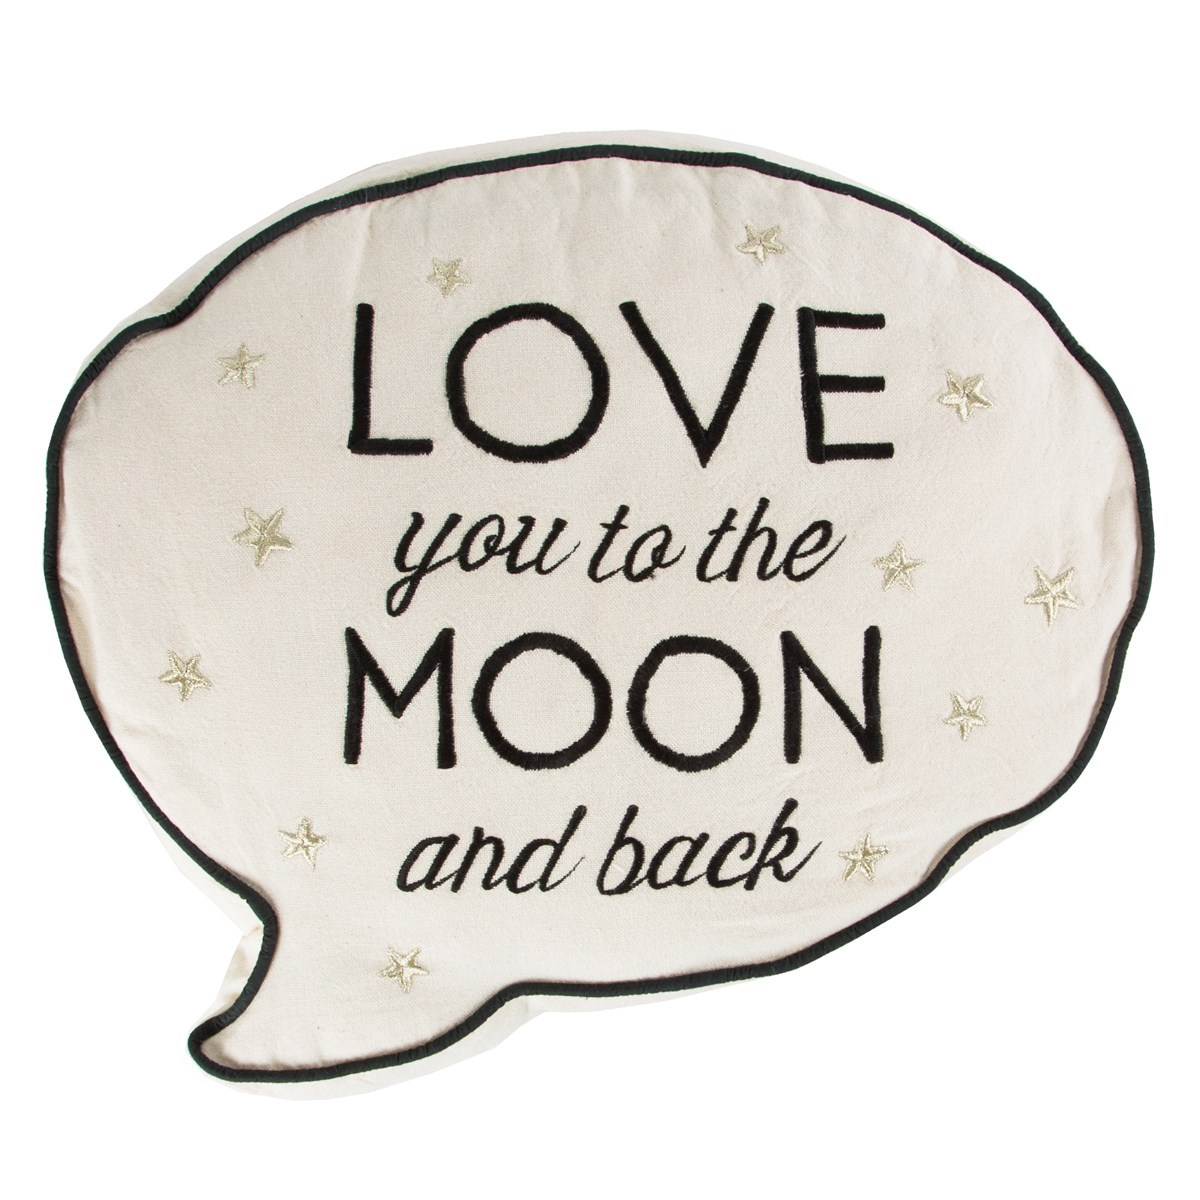 love you to the moon back speech bubble cushion default image